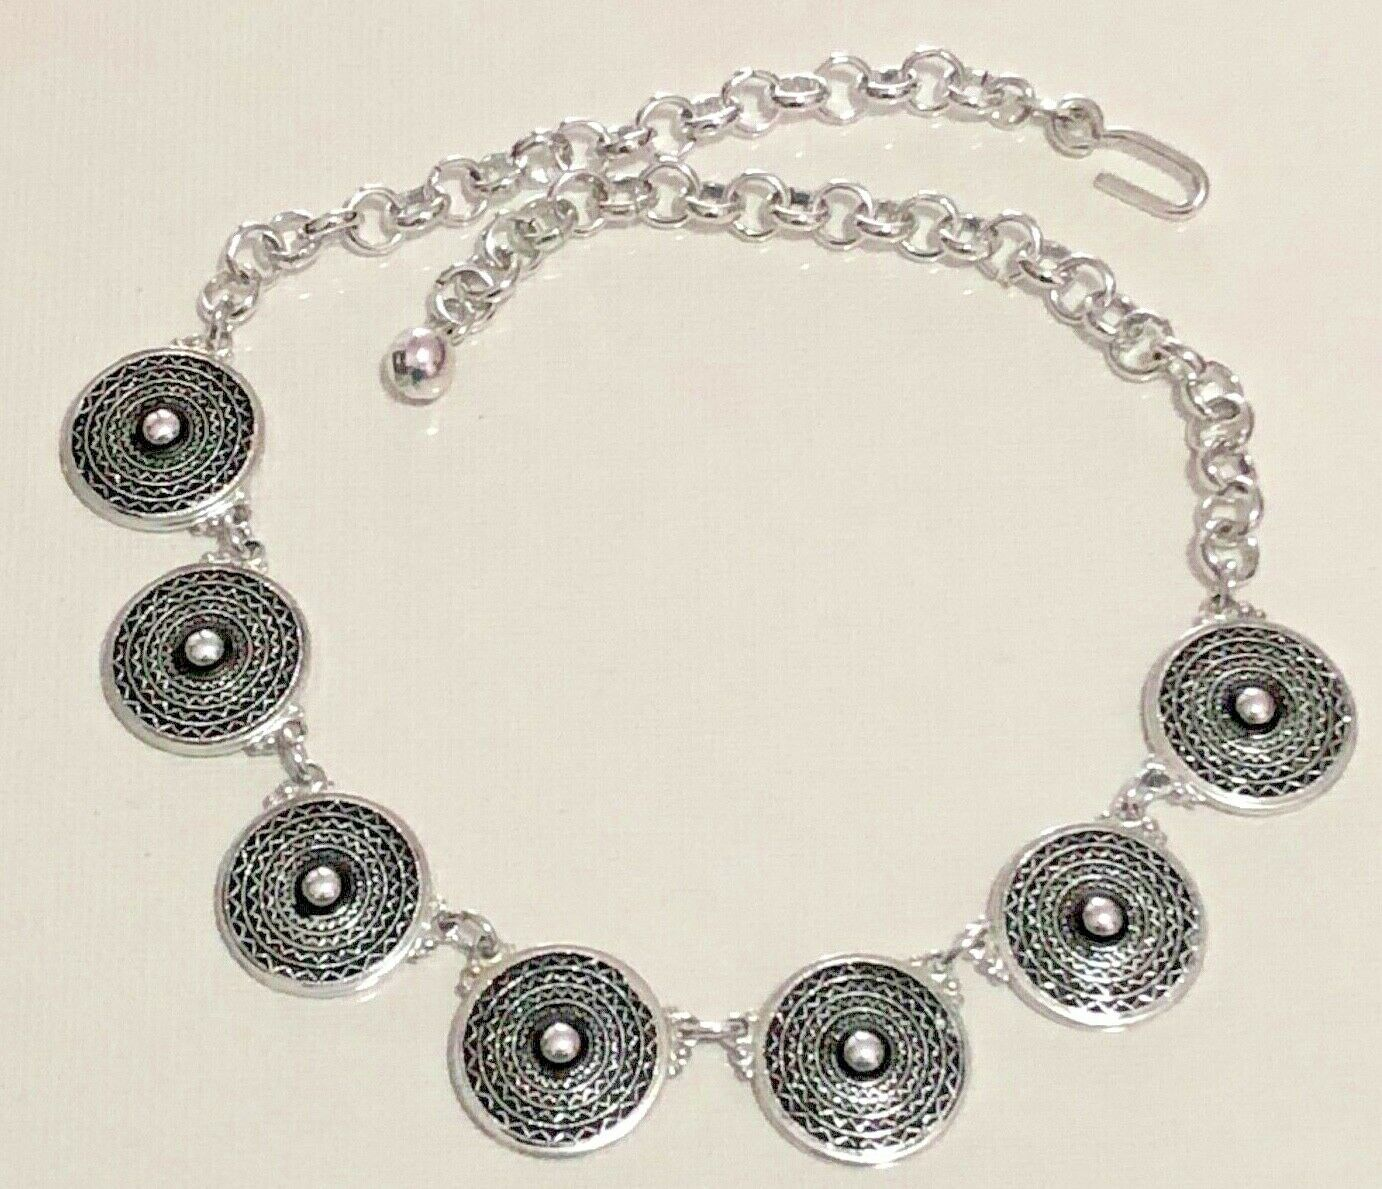 Awesome Vintage Textured Aluminum Disk Link Style Necklace - Made in Germany